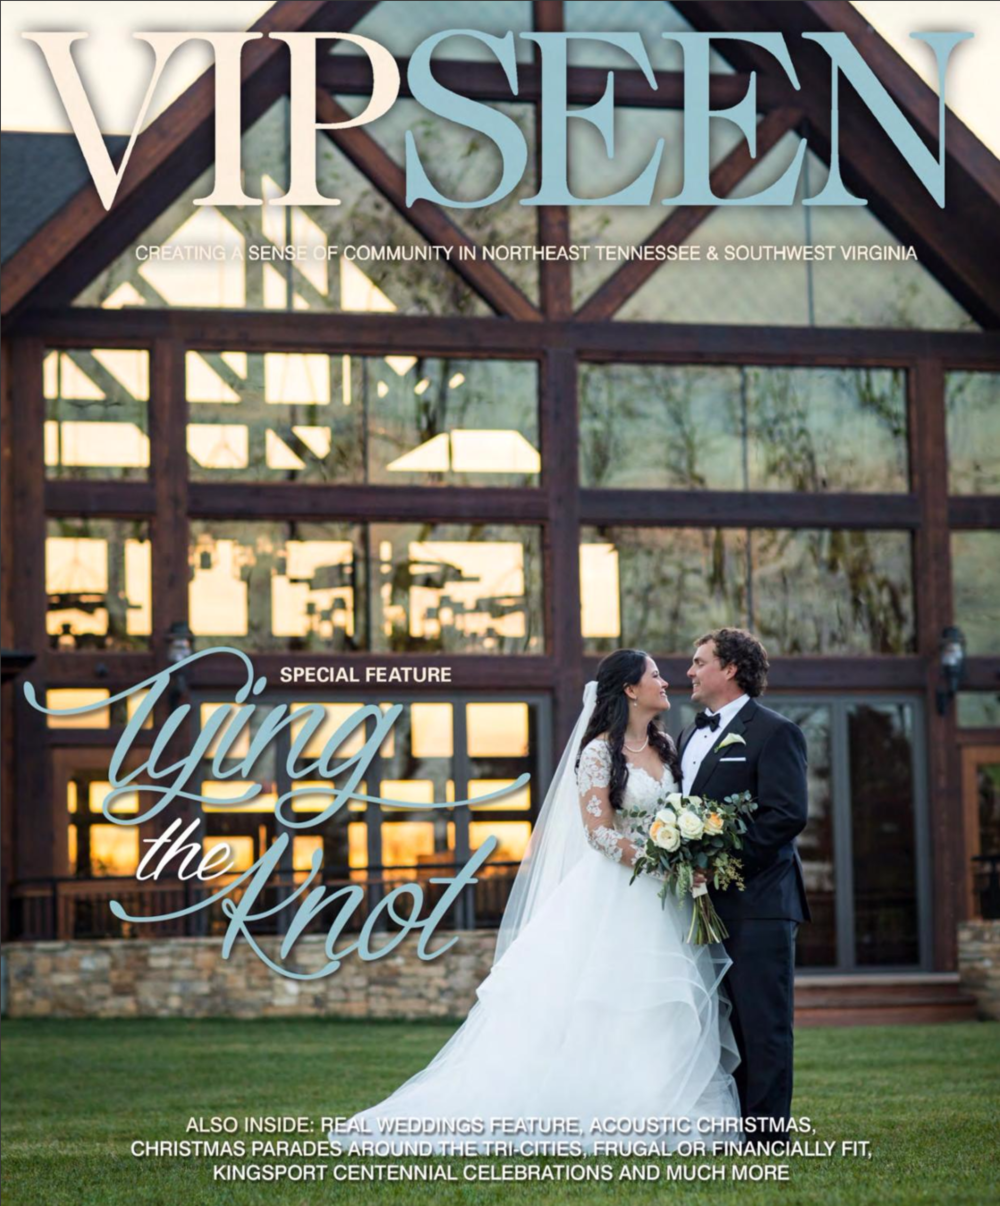 Leanne + Roderick's Wedding Featured in VIPSeen Magazine - Revival Photography Destination Wedding Photographers Asheville NC Lake Lure NC Tennessee and Virginia www.revivalphotography.com